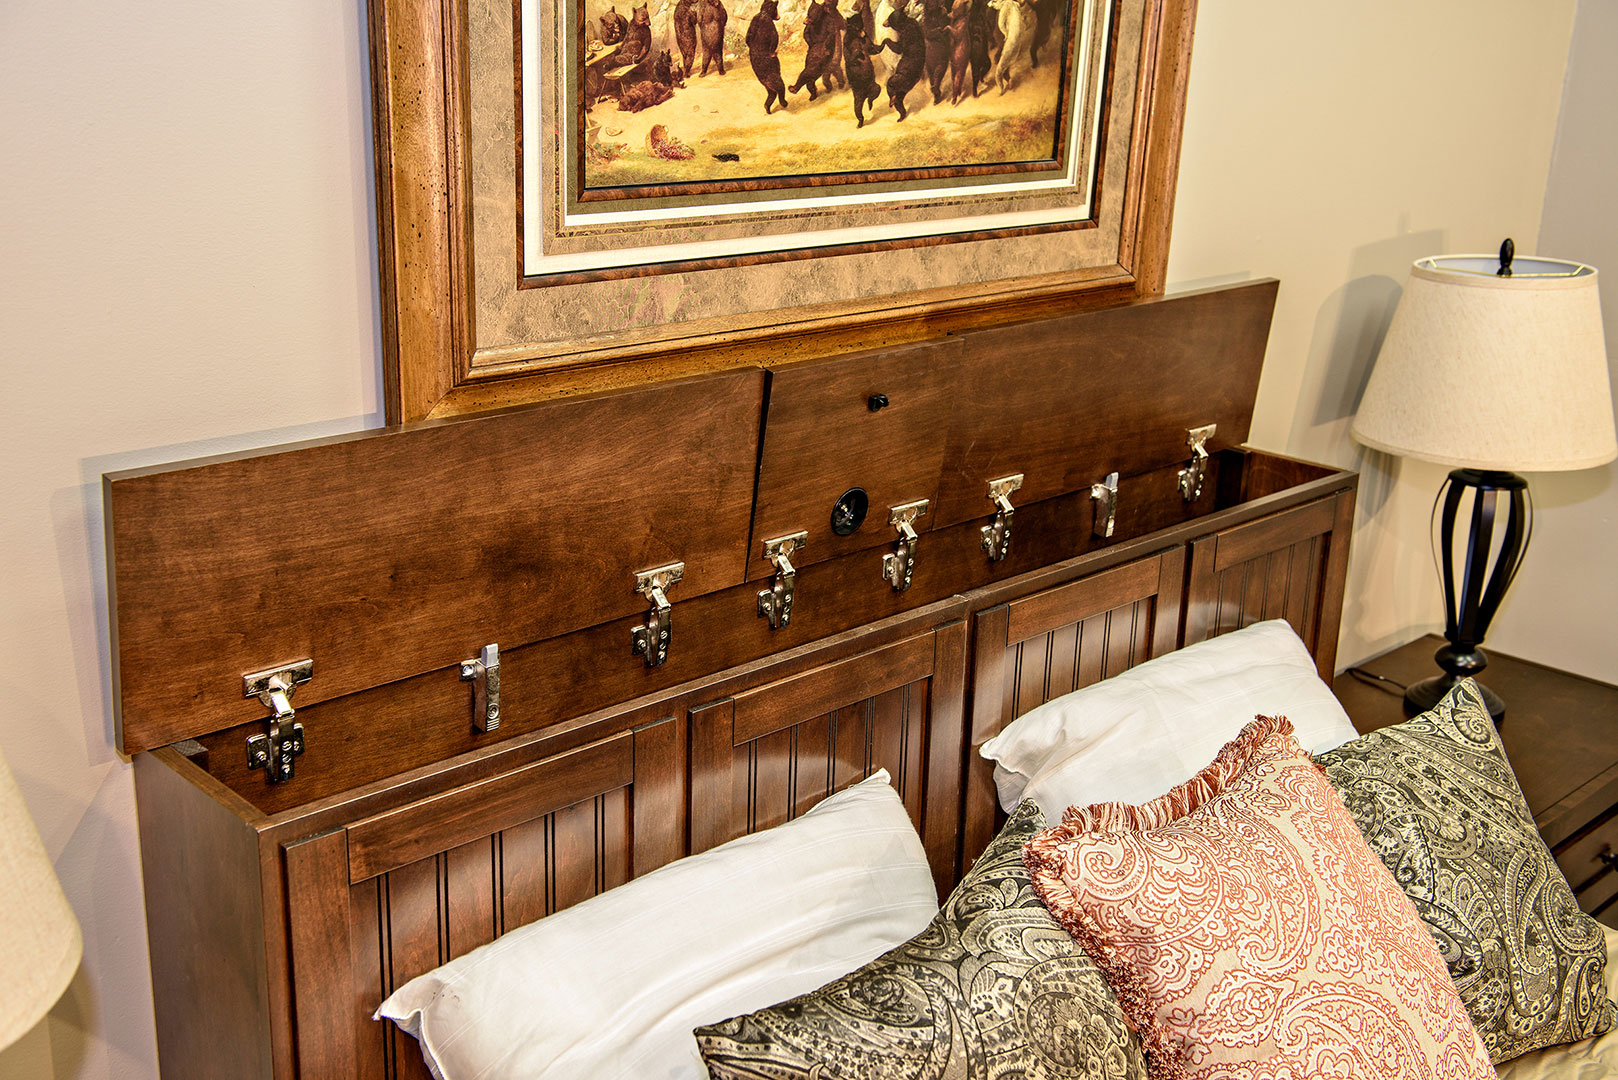 Storage Bed Wilding Wallbeds